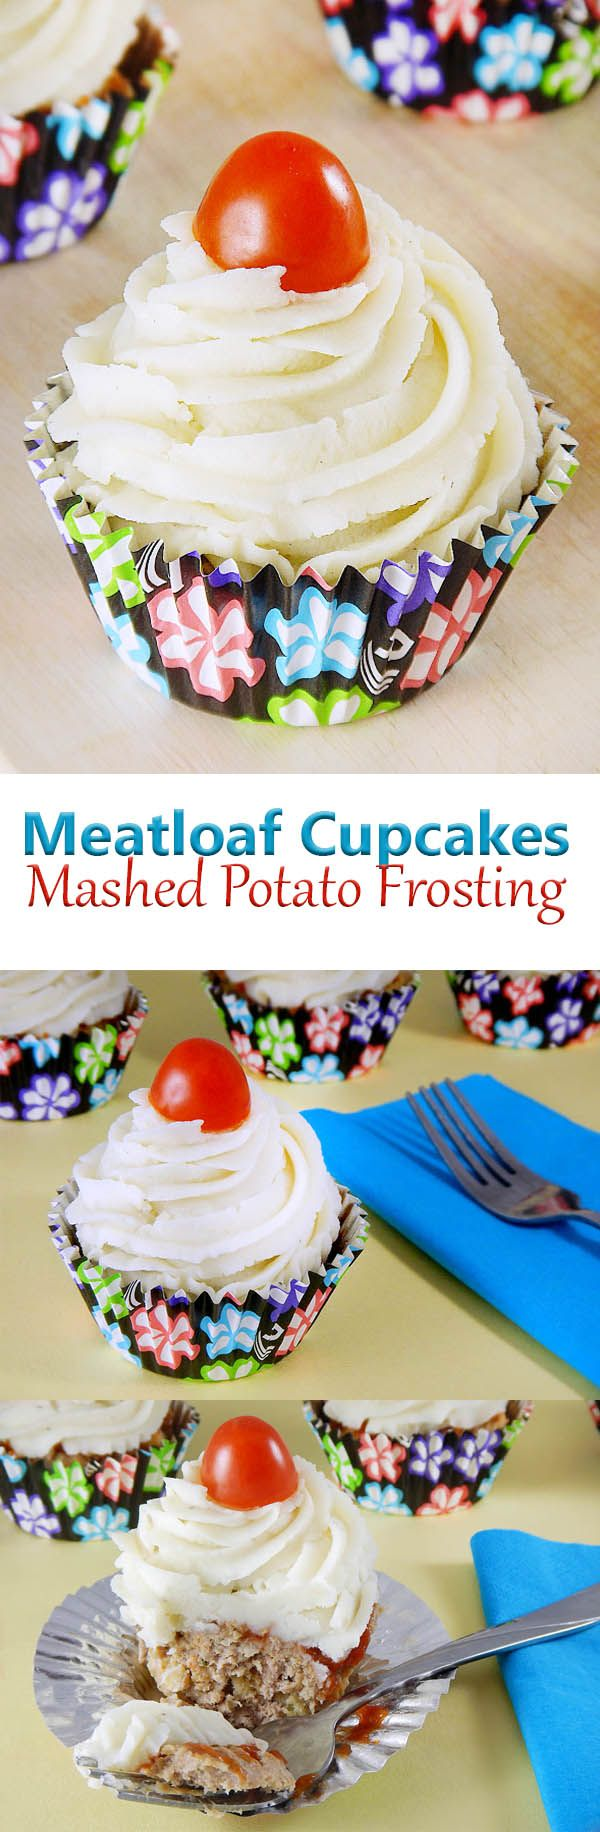 How to make april fools day chocolate bunny filled with veggies - Meatloaf Cupcakes With Mashed Potato Frosting These Make A Great April Fool S Day Prank Recipe